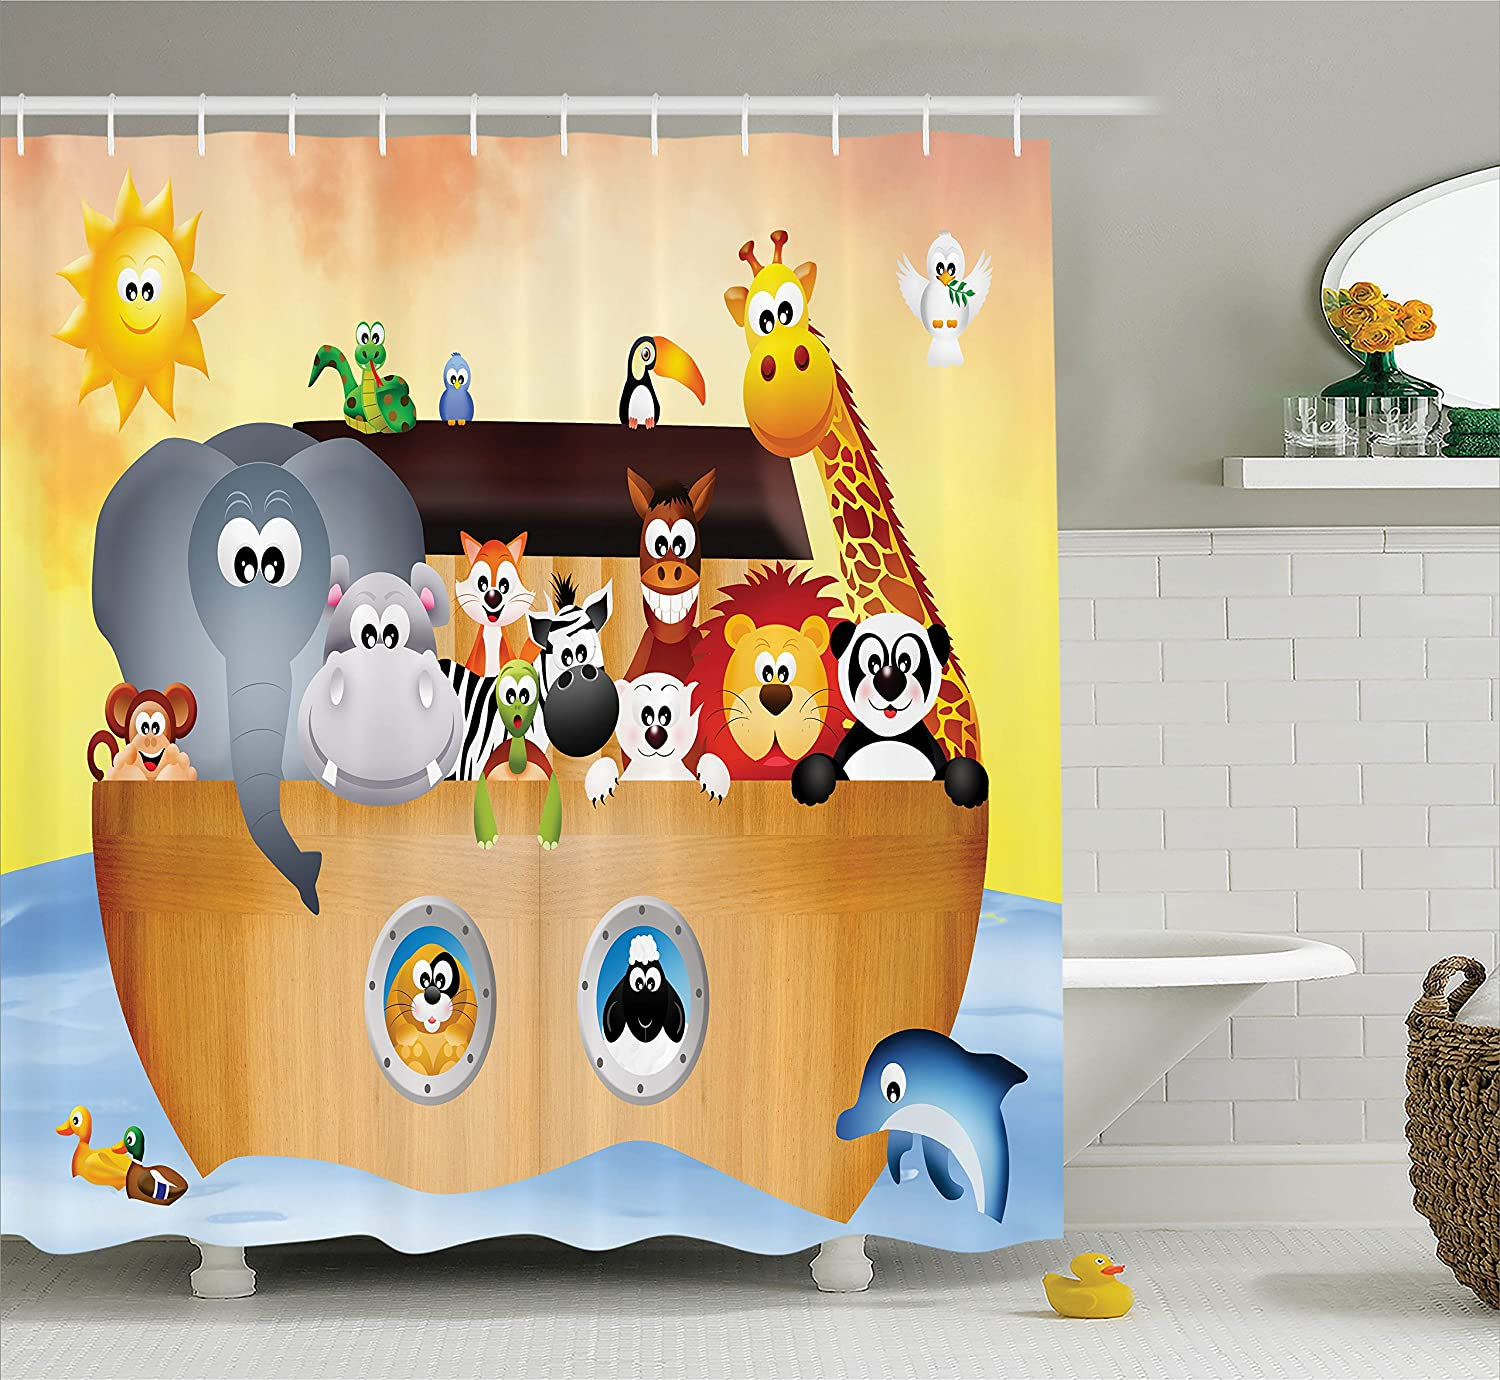 Noah's Ark Shower Curtain Set By Ambesonne, Cute Animals On The Ark Of Noah In The Sea Bible Mythical Lion Fun Graphic Print, Bathroom Accessories Decor, 69W X 70L Inches, Orange Blue and Brown